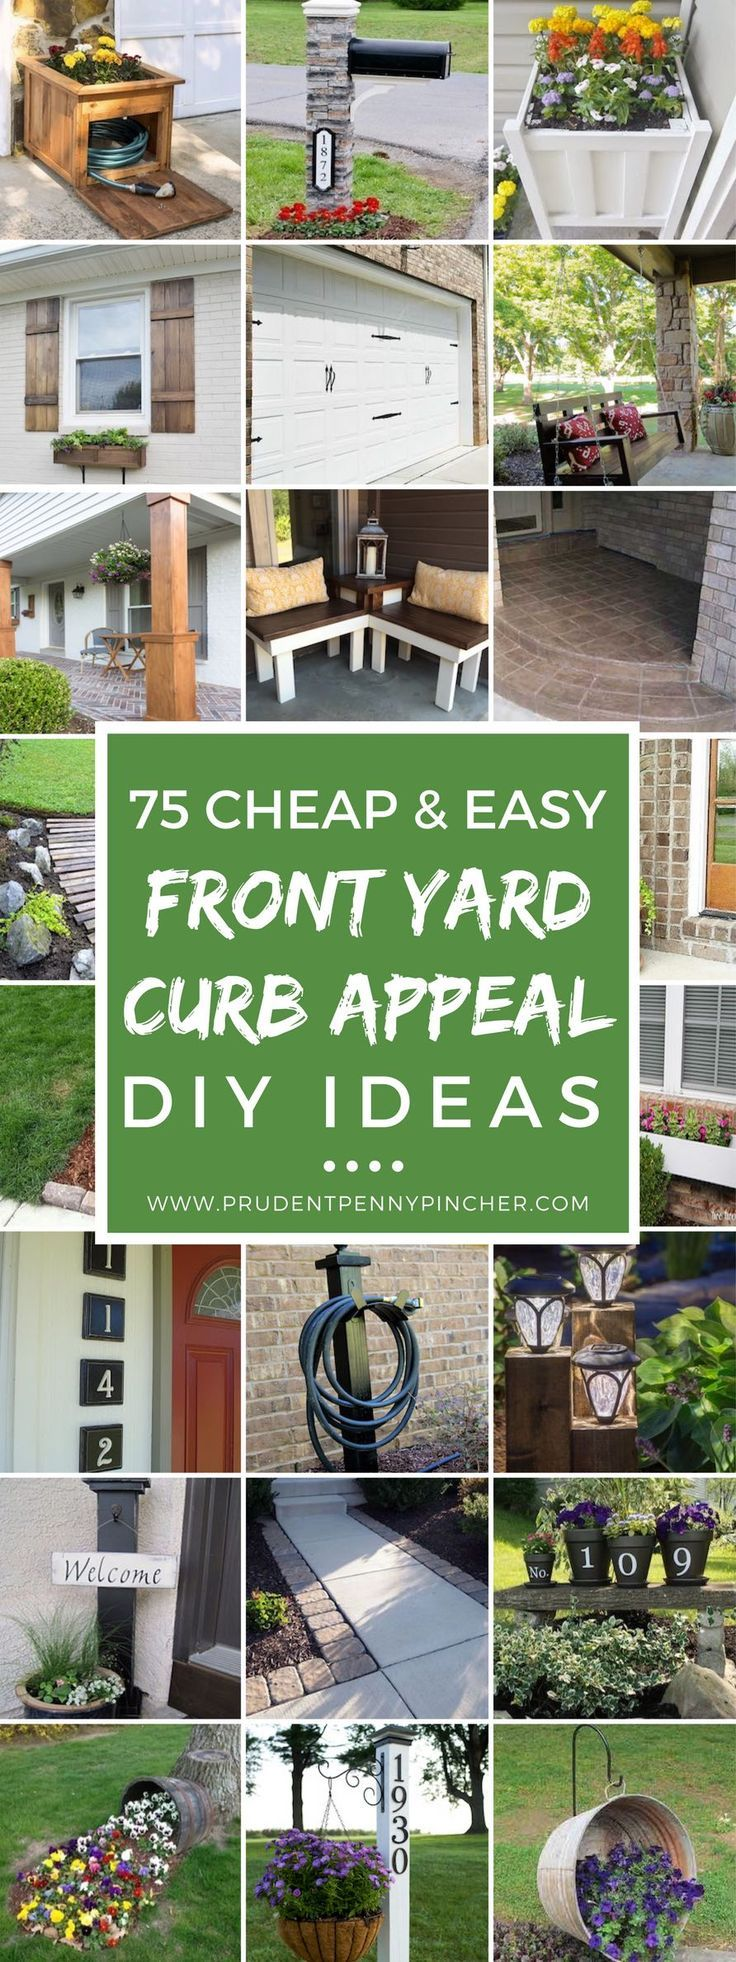 Outdoor decorating gardening 75 cheap and easy front - Diy front yard landscaping ideas on a budget ...